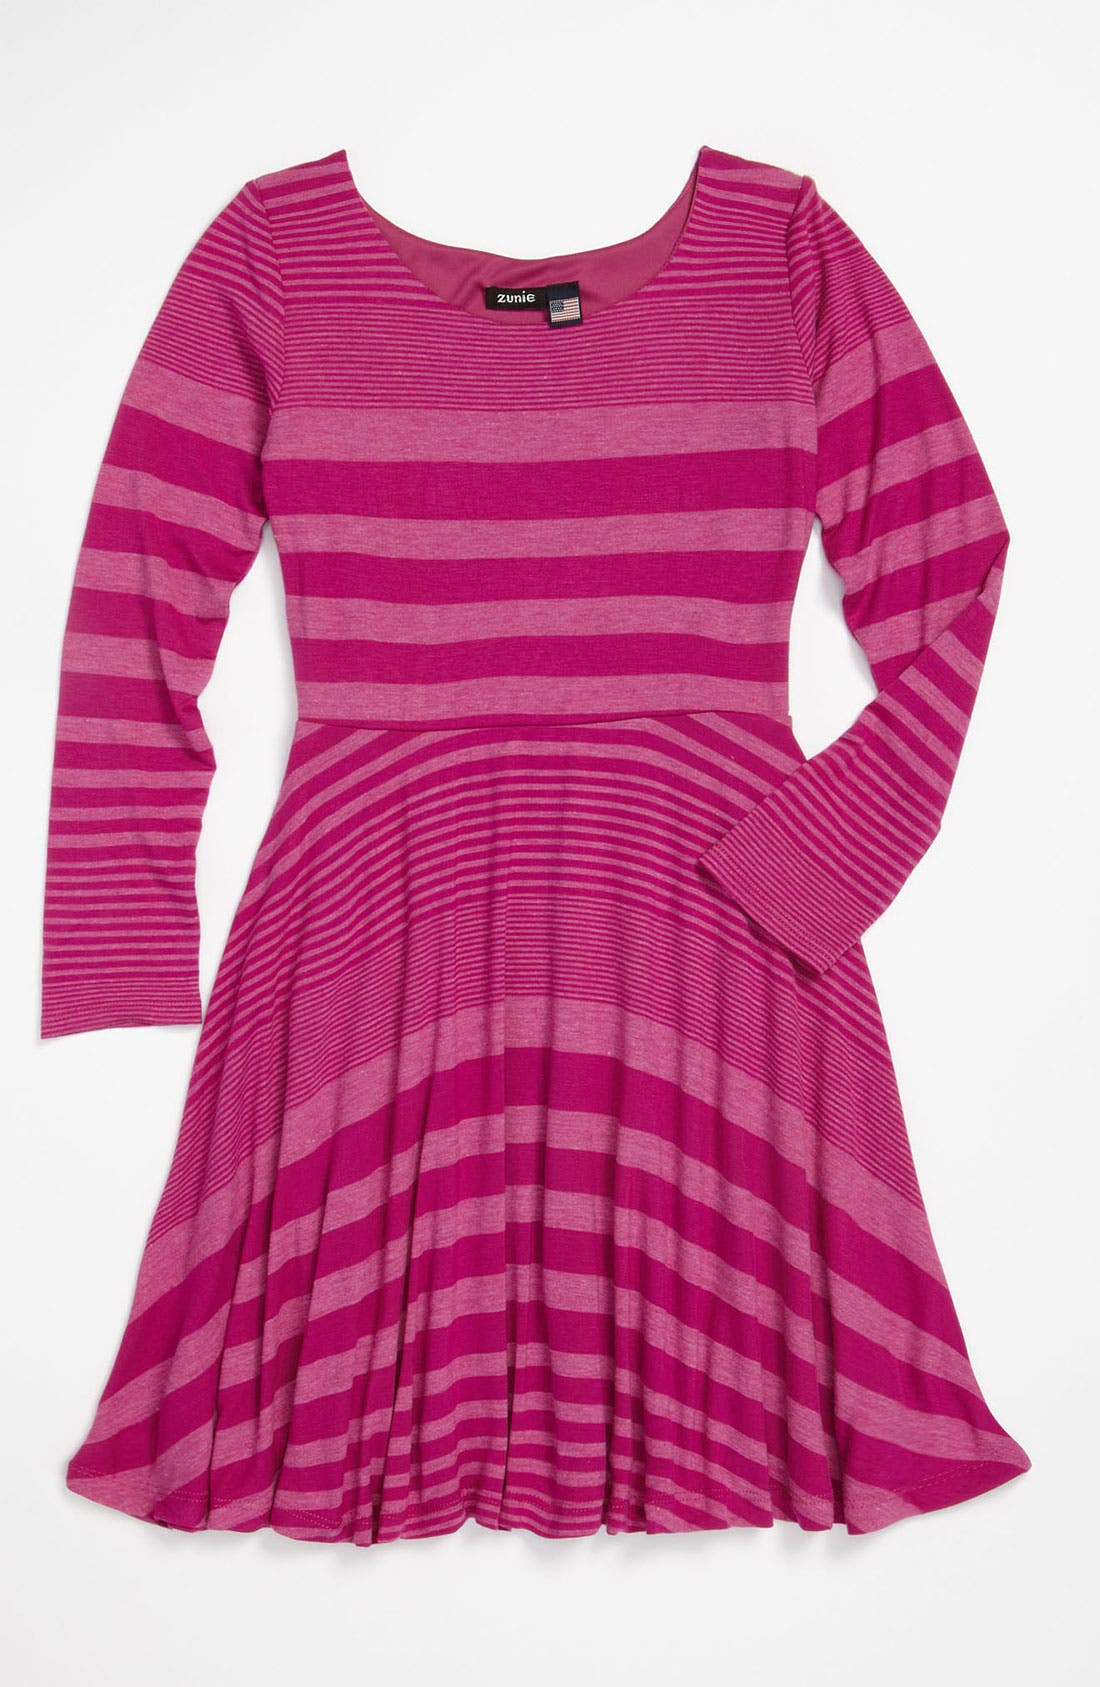 Alternate Image 1 Selected - Zunie Stripe Knit Dress (Little Girls & Big Girls)